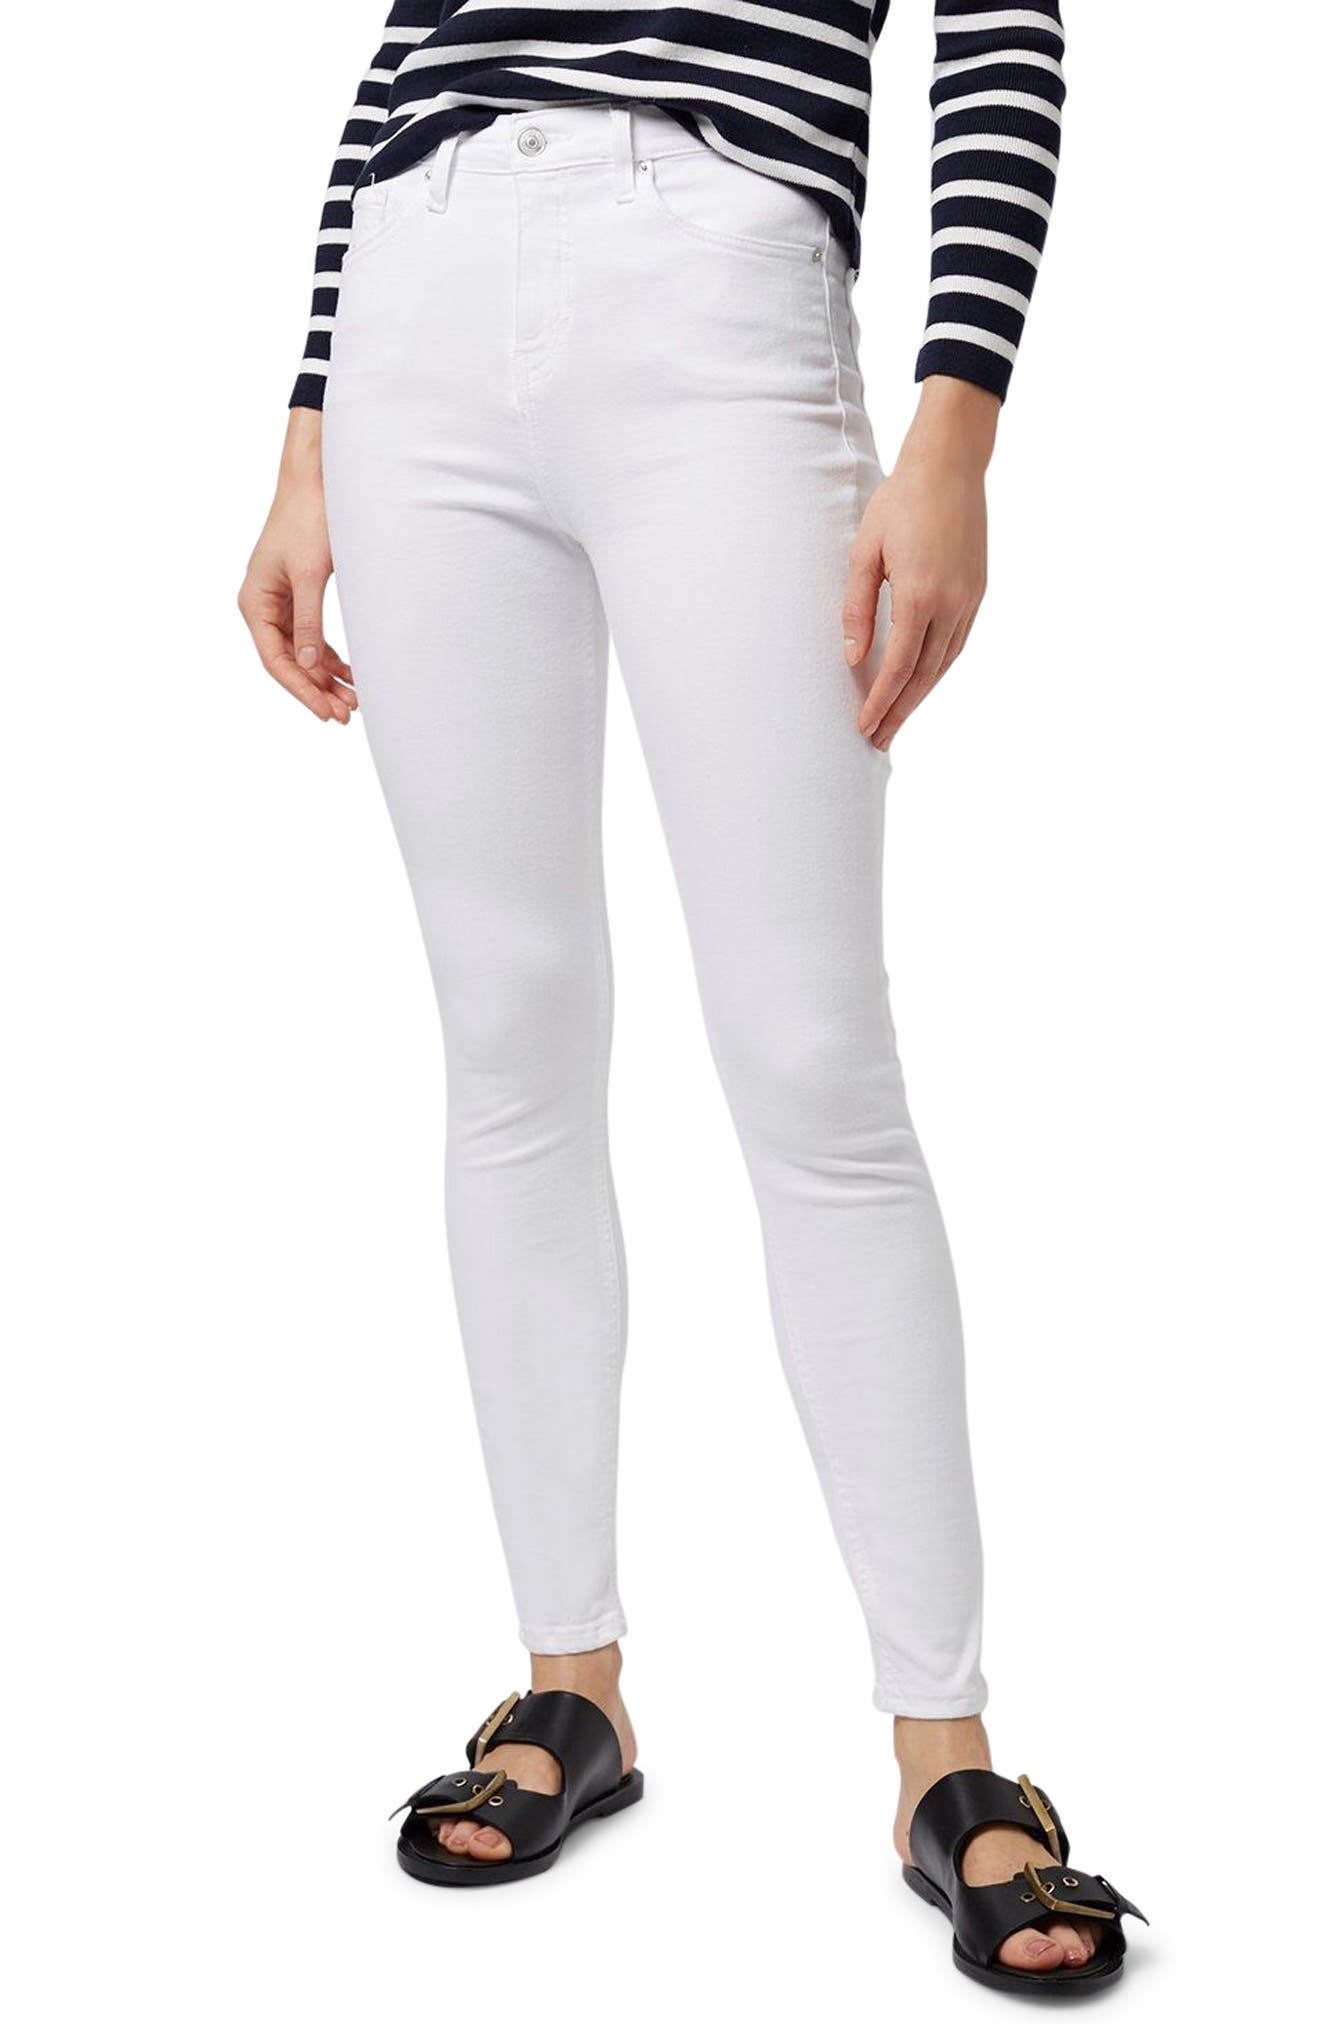 Moto Jamie Jeans,                         Main,                         color, 100